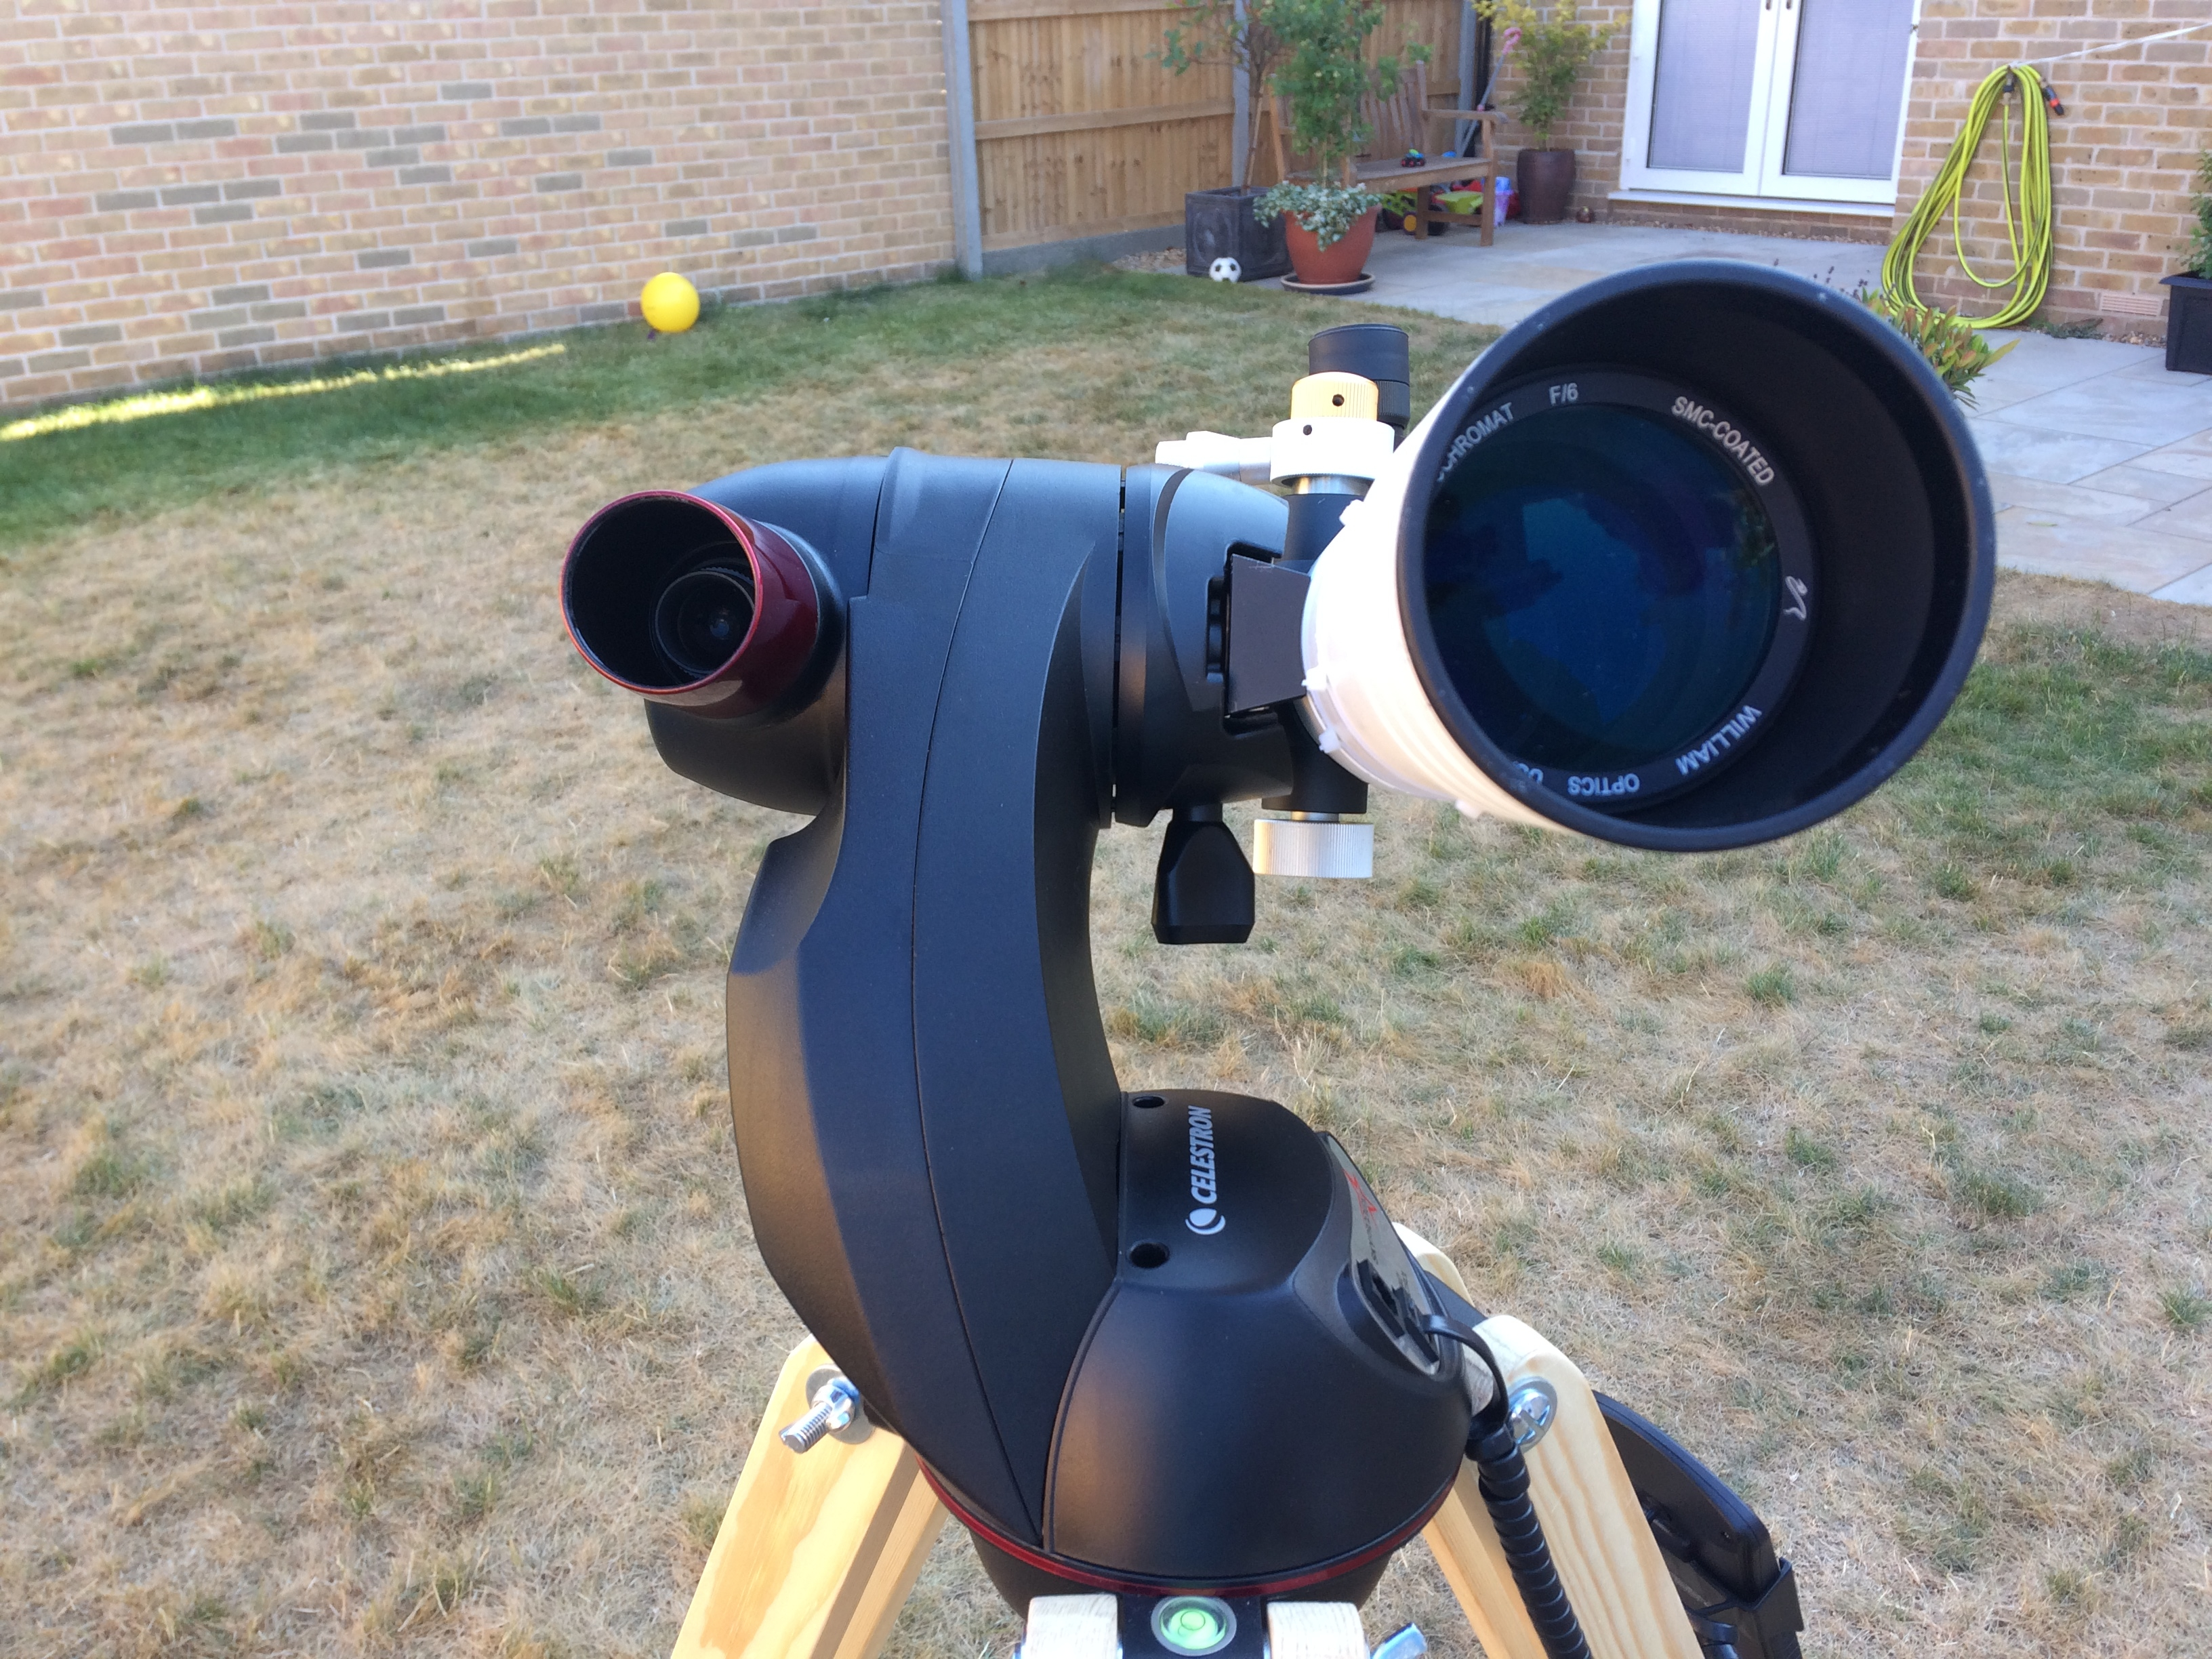 Moon and saturn skywatcher maksutov youtube